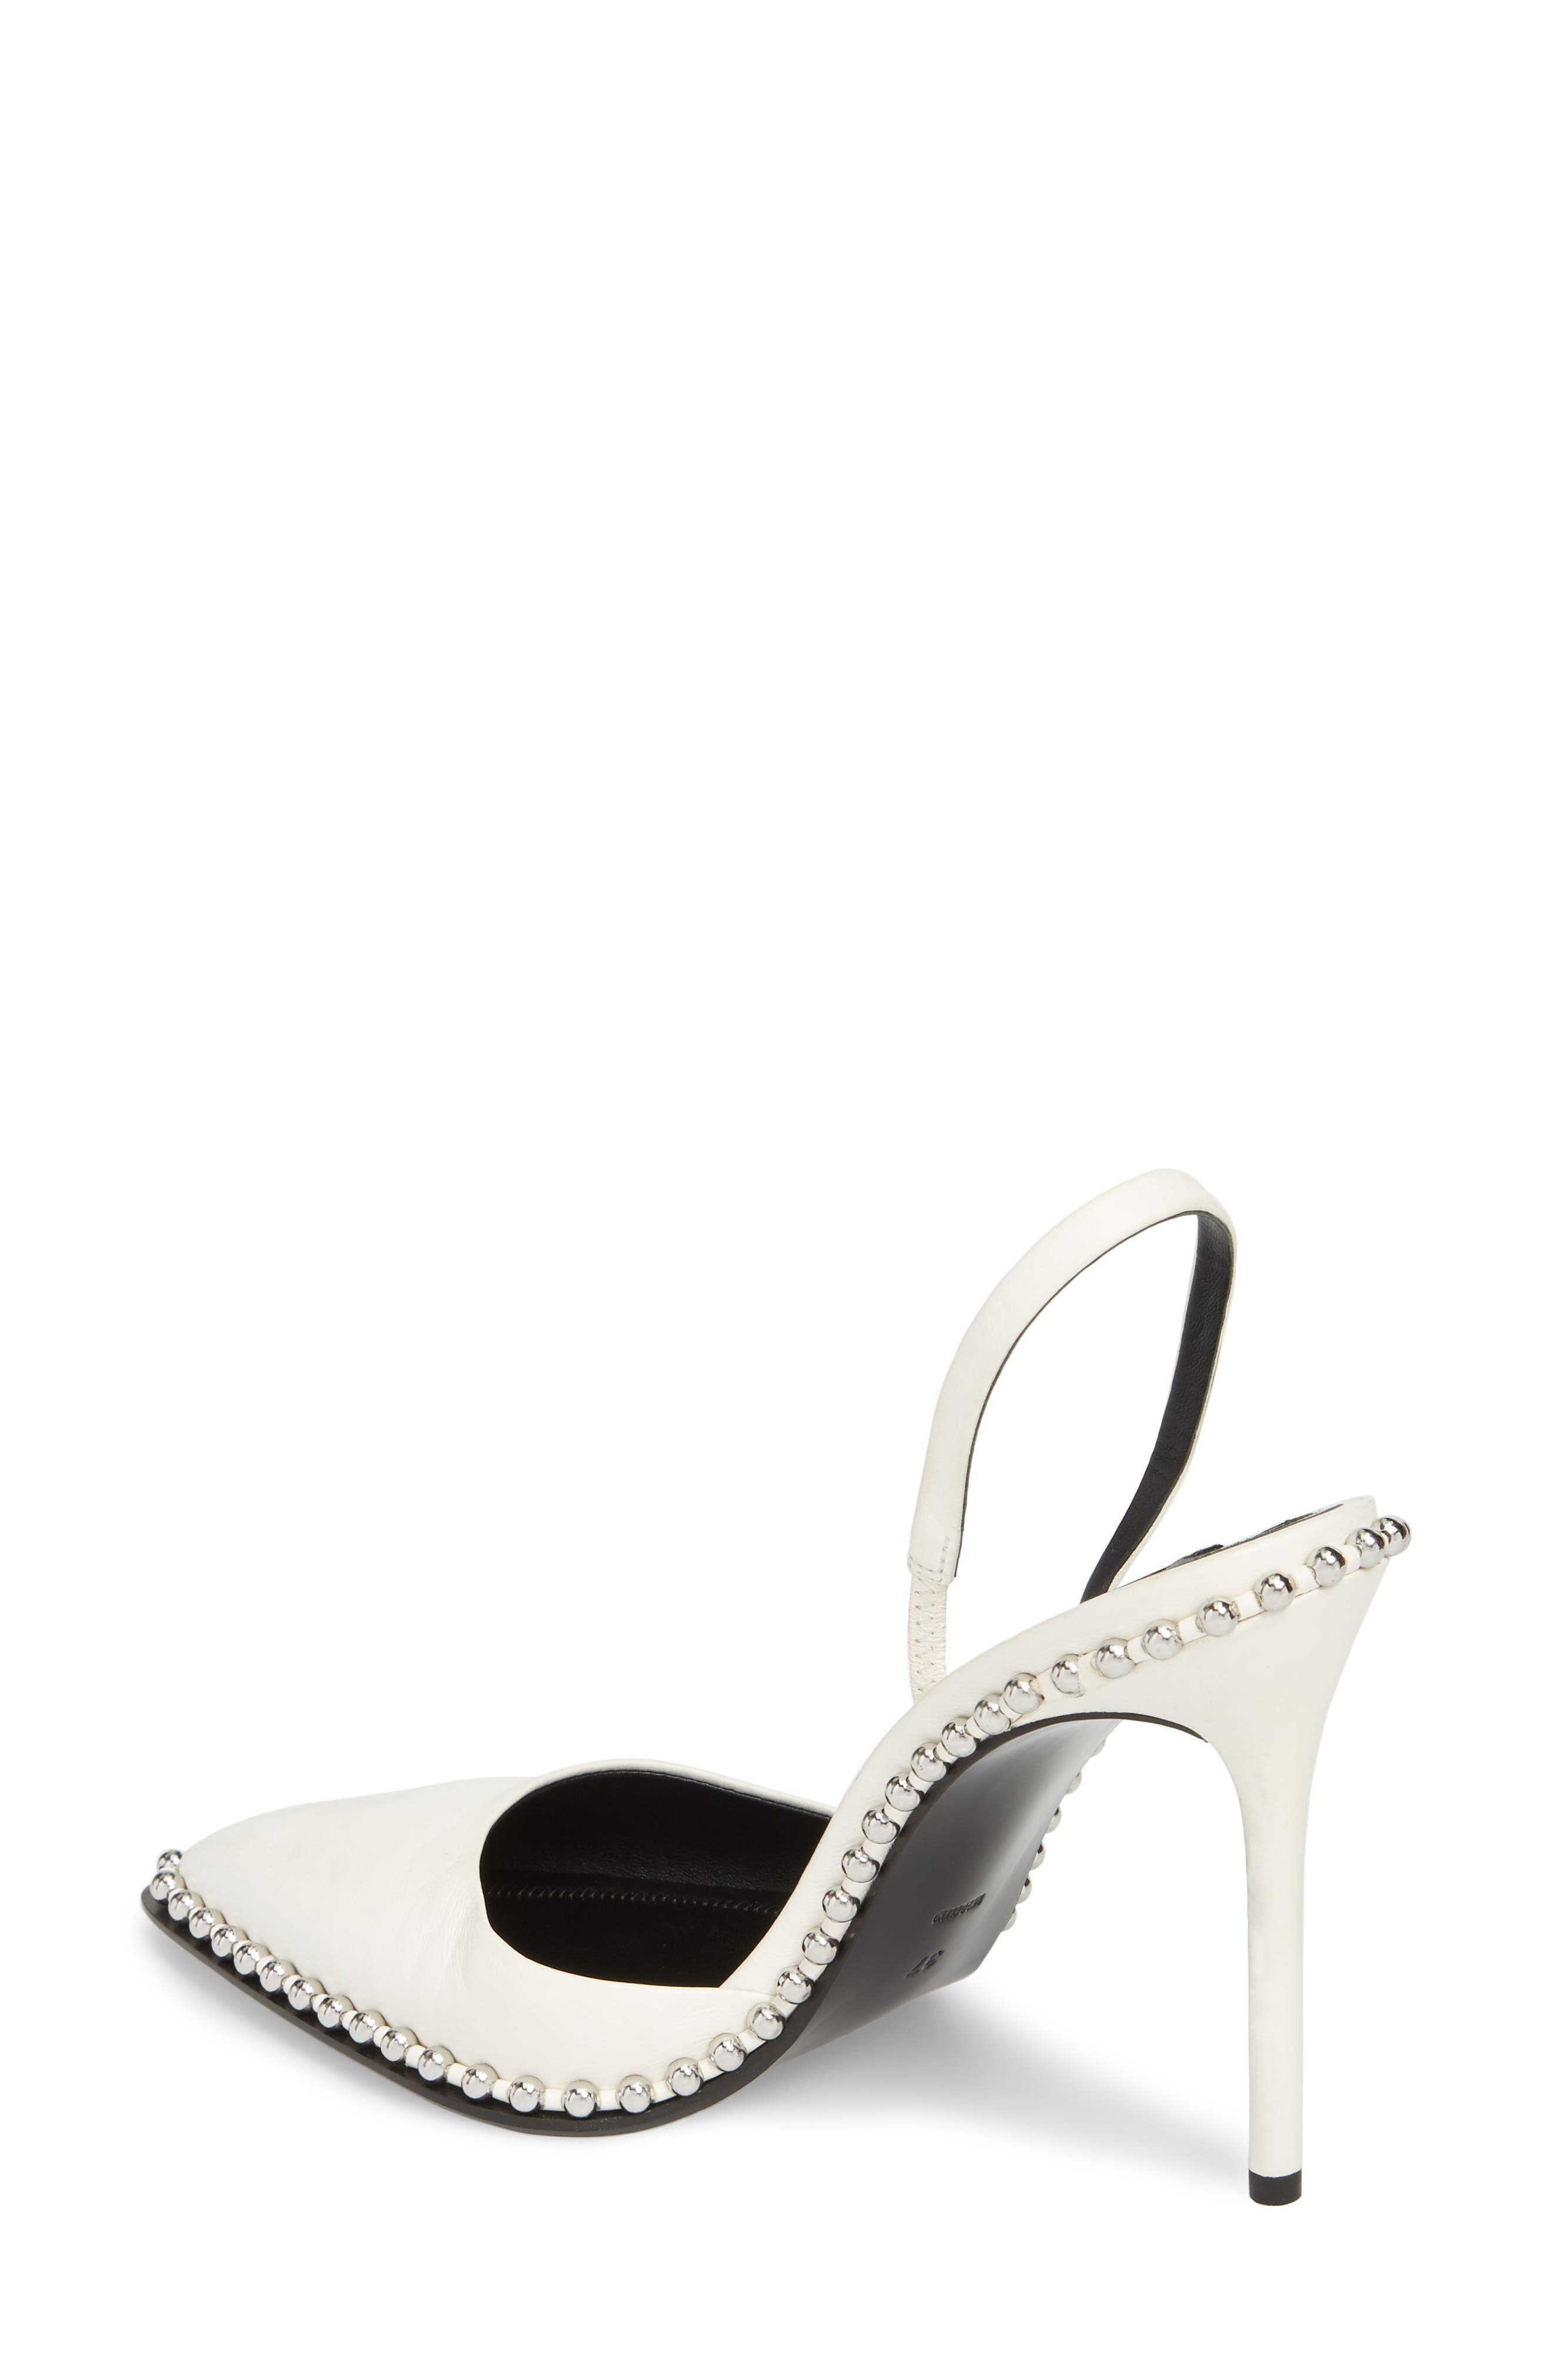 ALEXANDER WANG, Rina Beaded Pump, Alternate thumbnail 2, color, WHITE LEATHER